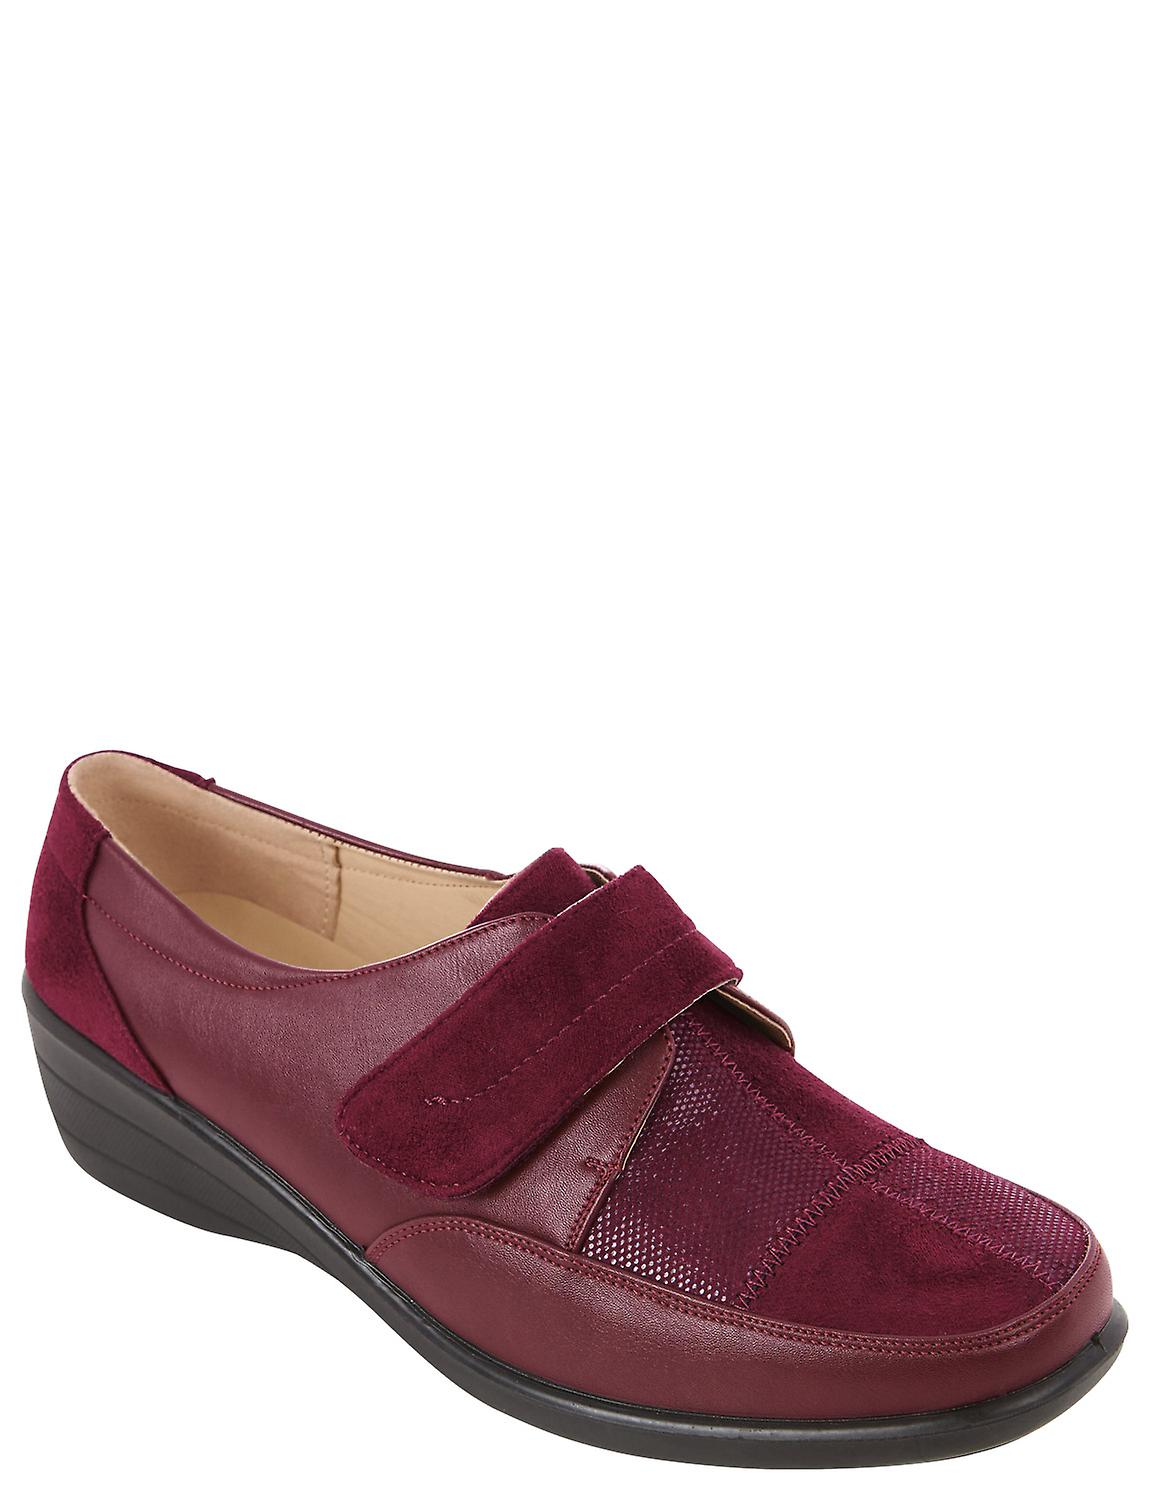 Ladies Womens Mock Suede Leather Touch and Close Strap Shoe Veronica